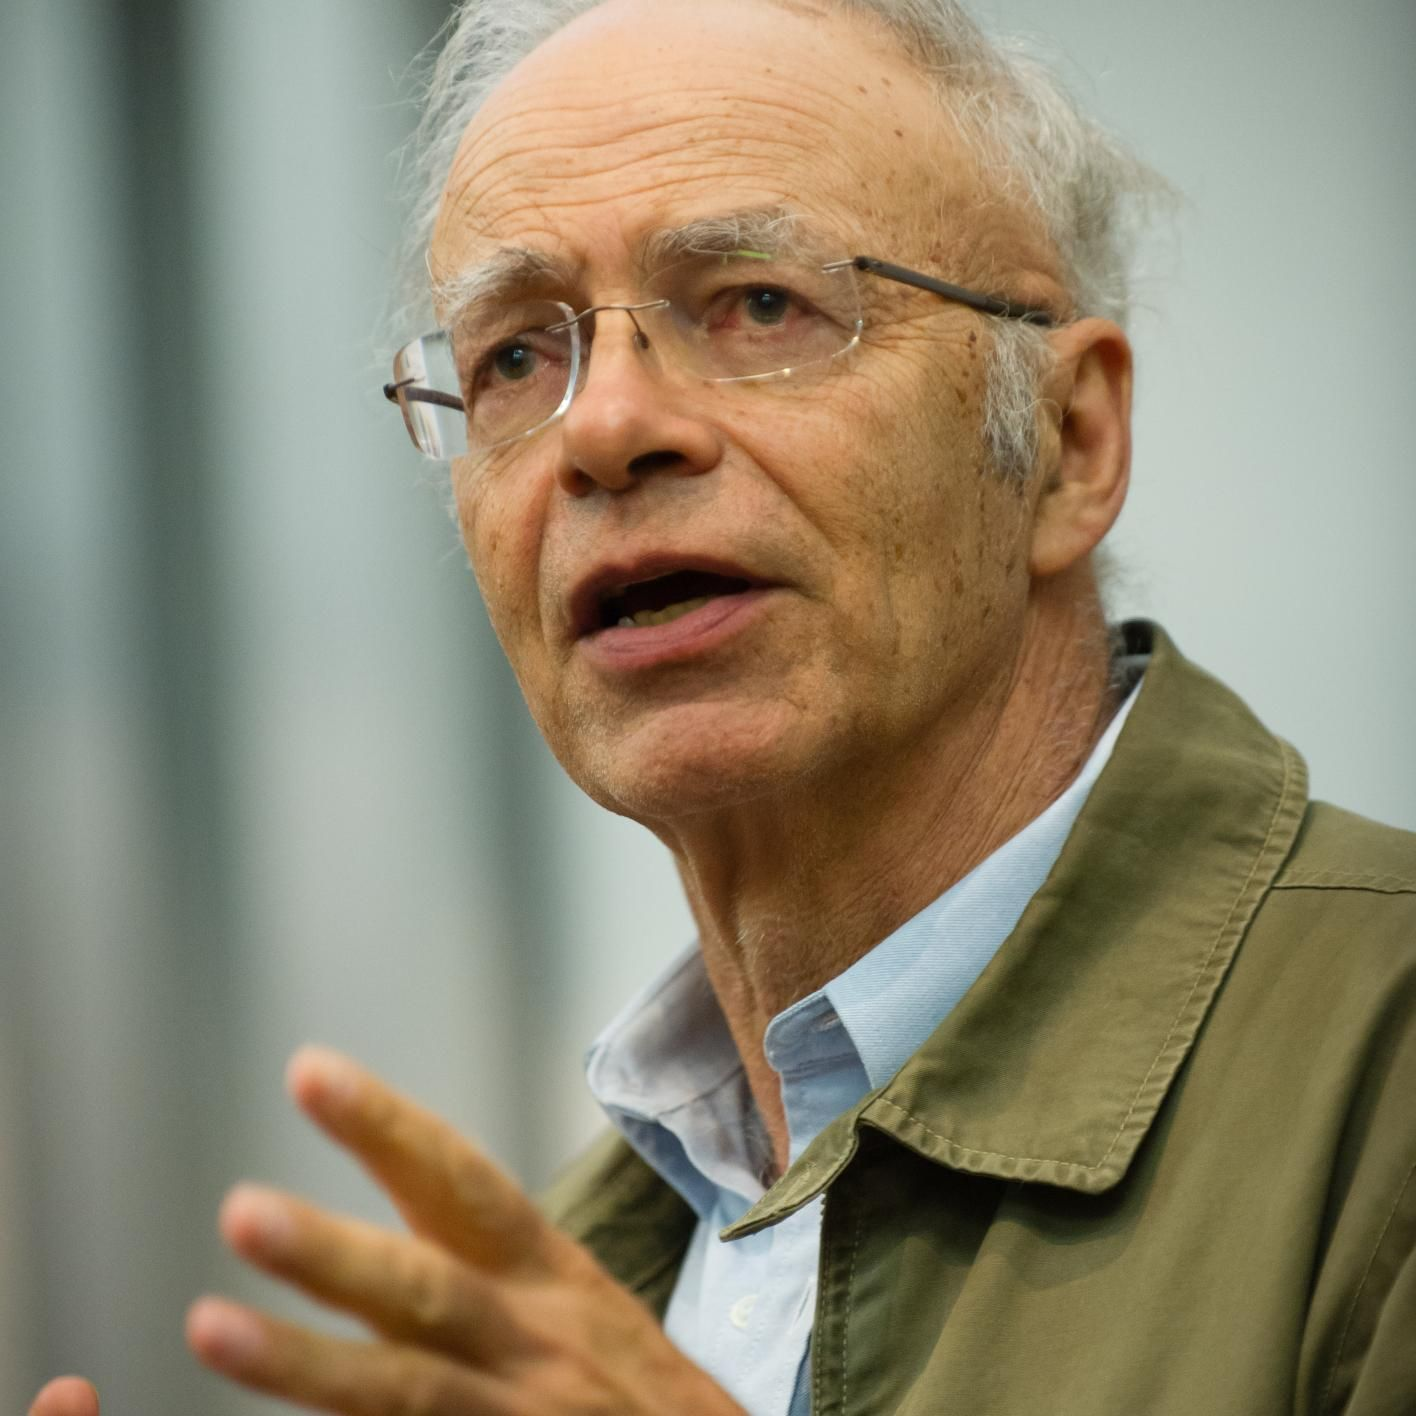 Gettysburg Essay Peter Singer An Australianborn Ethical Philosopher Writes In His Essay  The Great Gatsby The American Dream Essay also Essay Editor Peter Singer An Australianborn Ethical Philosopher Writes In His  Compare And Contrast Essay Examples For College